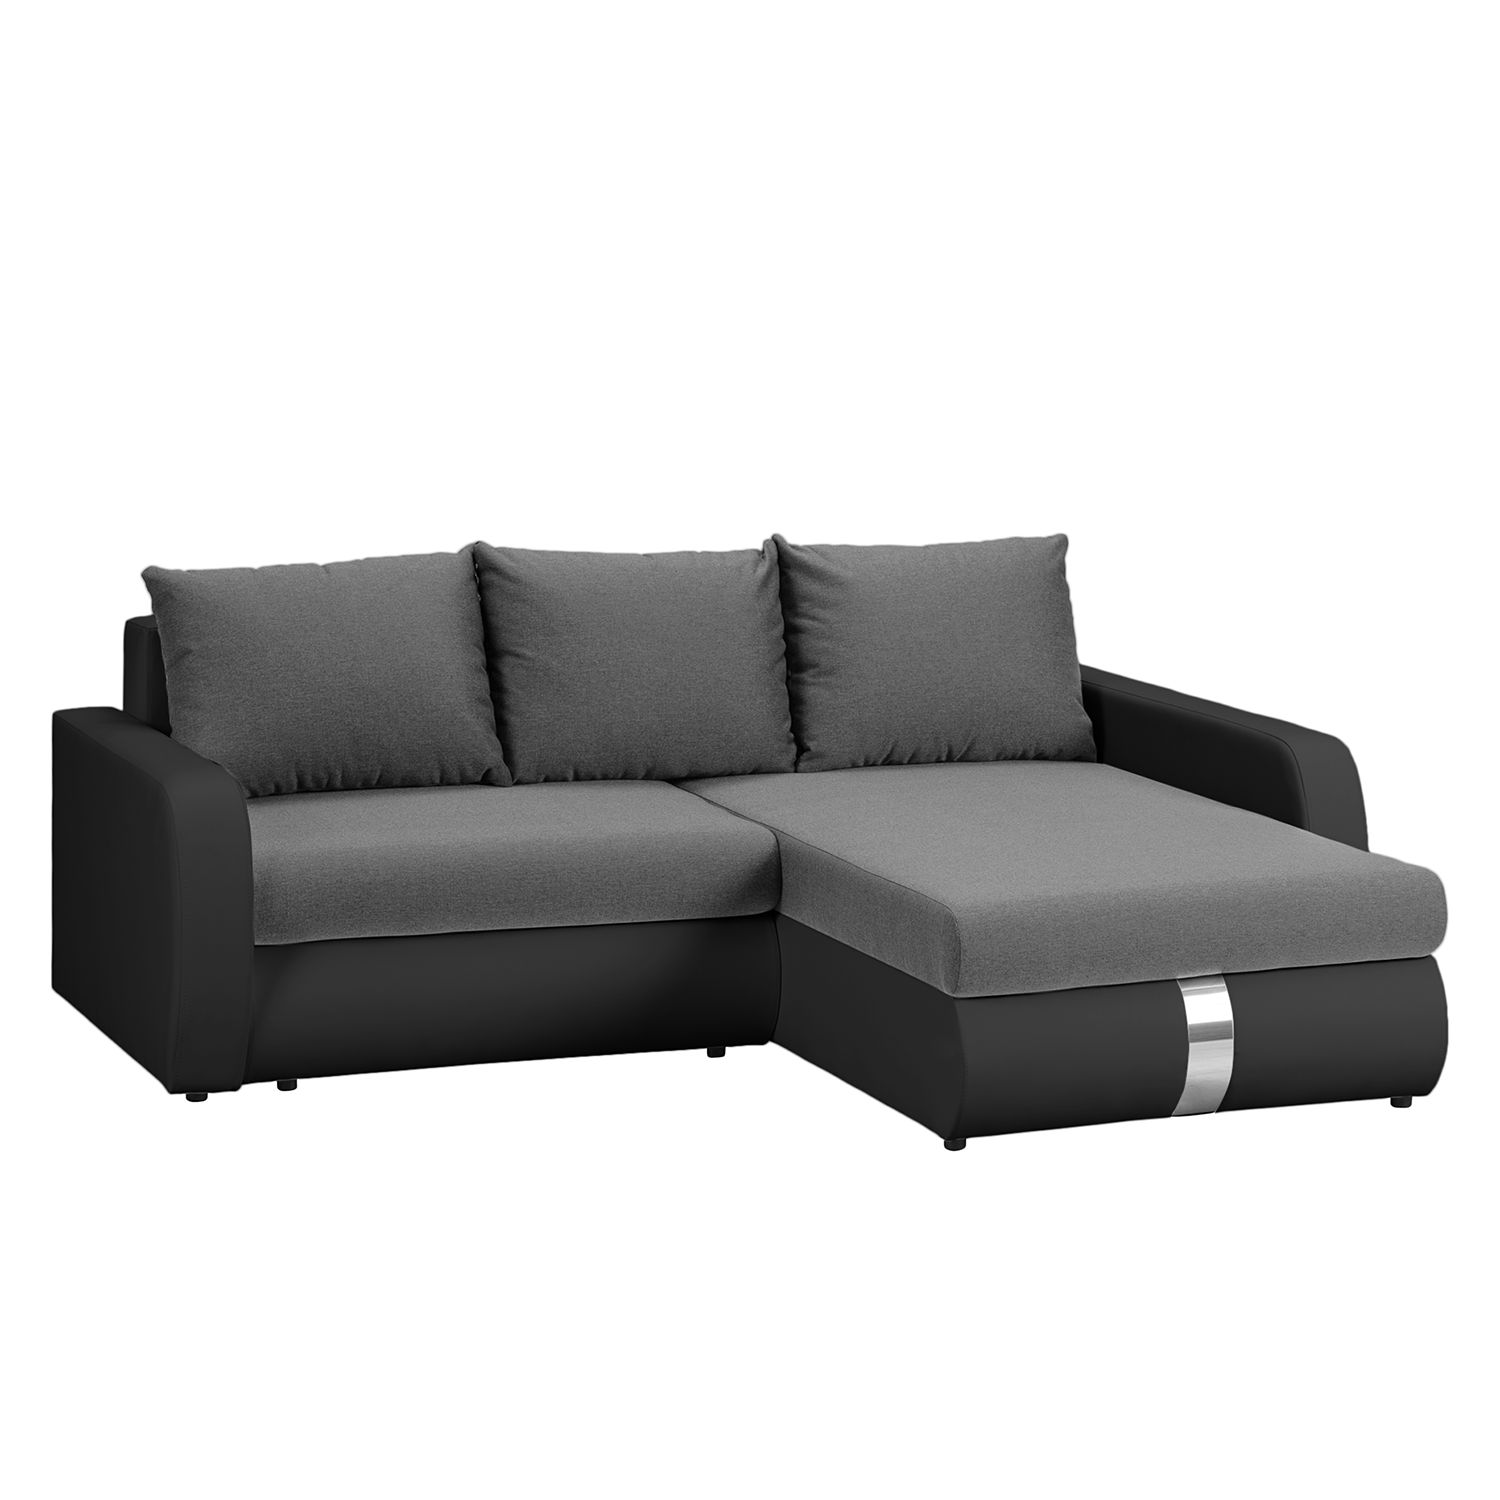 ecksofa mit schlaffunktion petrol inspirierendes design f r wohnm bel. Black Bedroom Furniture Sets. Home Design Ideas